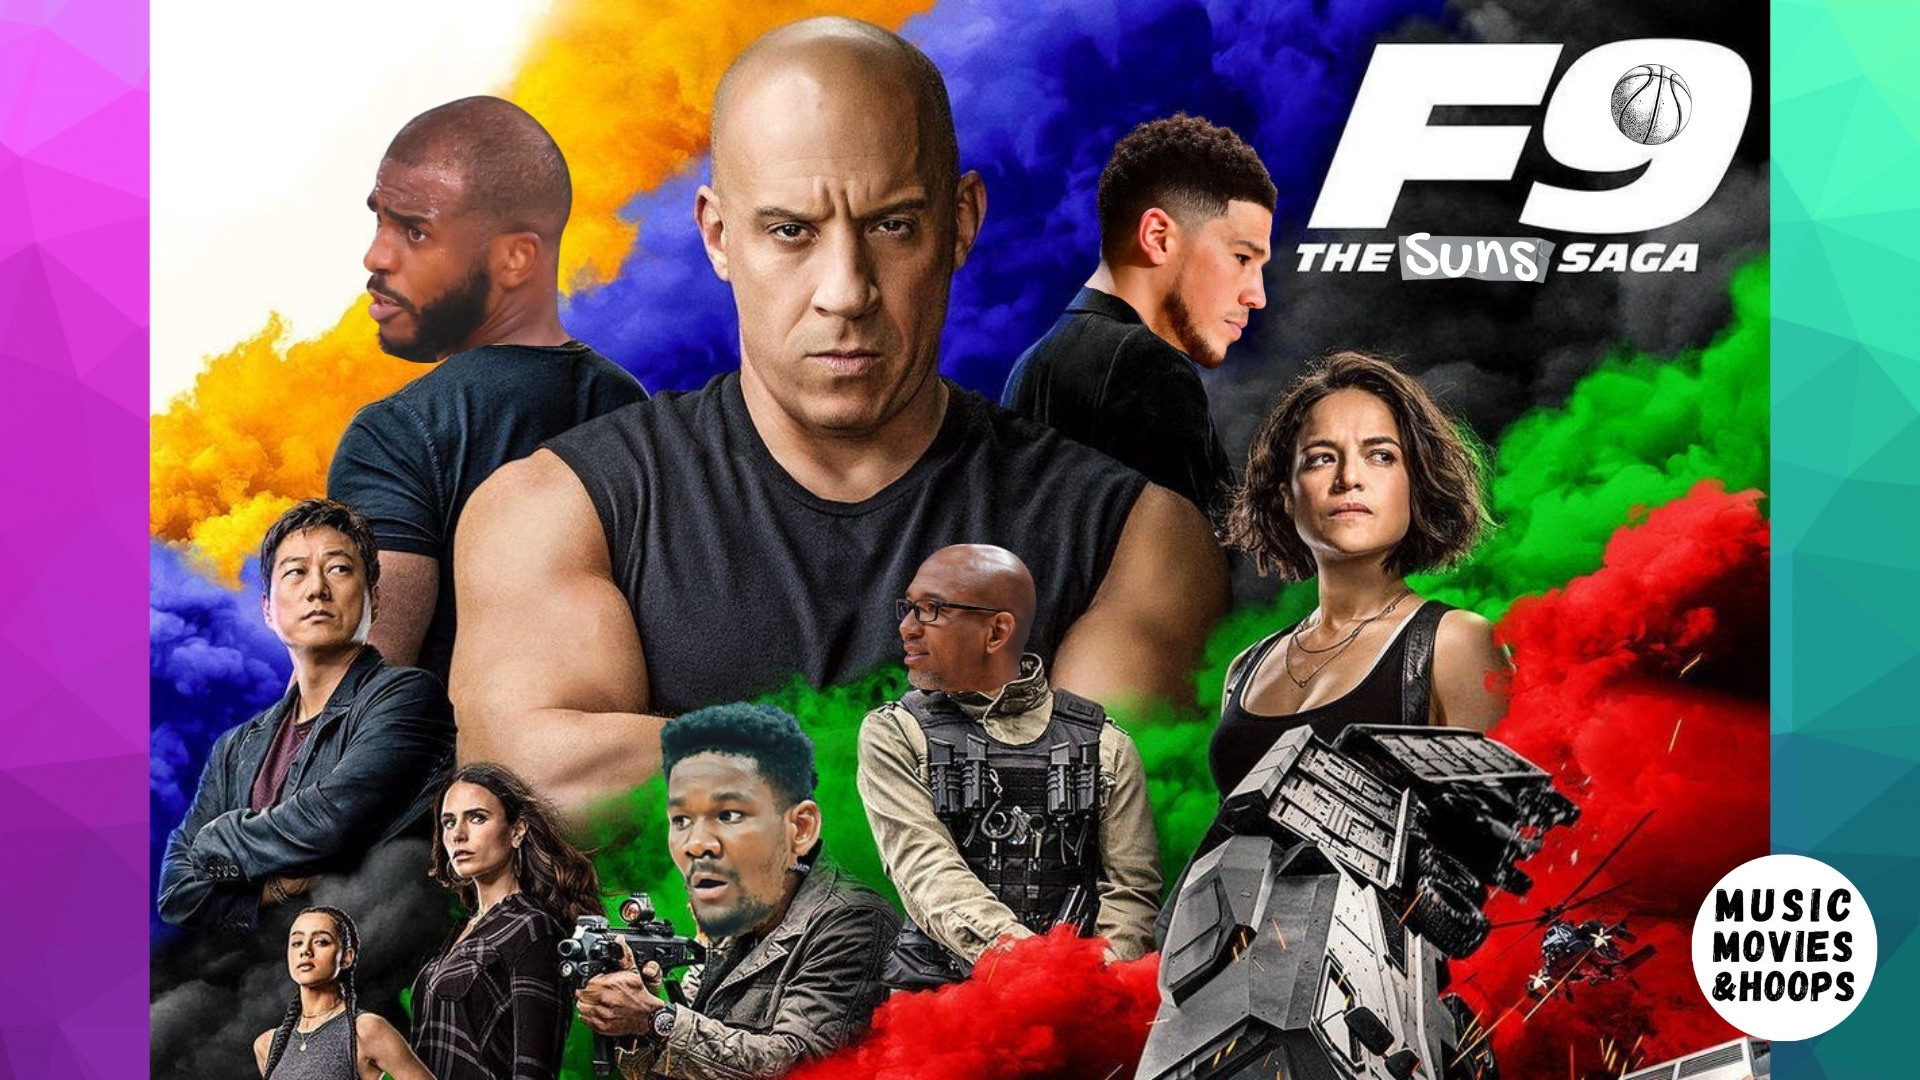 The Fast and Furious Champs